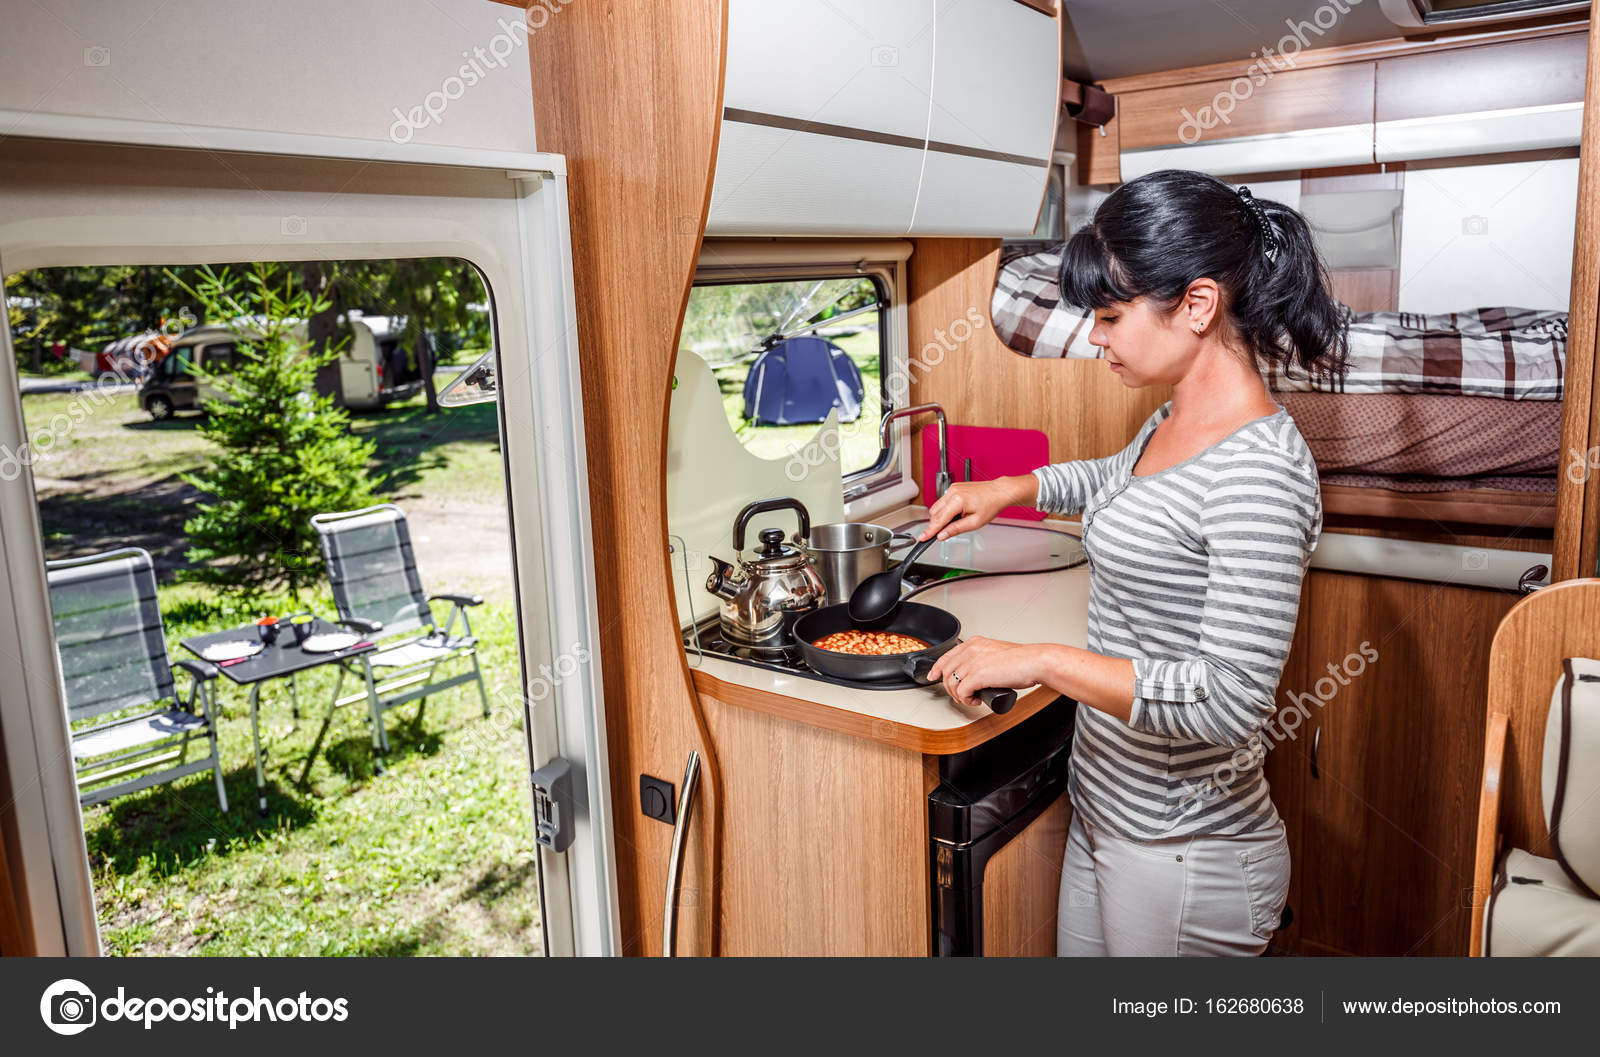 Woman Cooking In Camper, Motorhome Interior U2014 Stock Photo